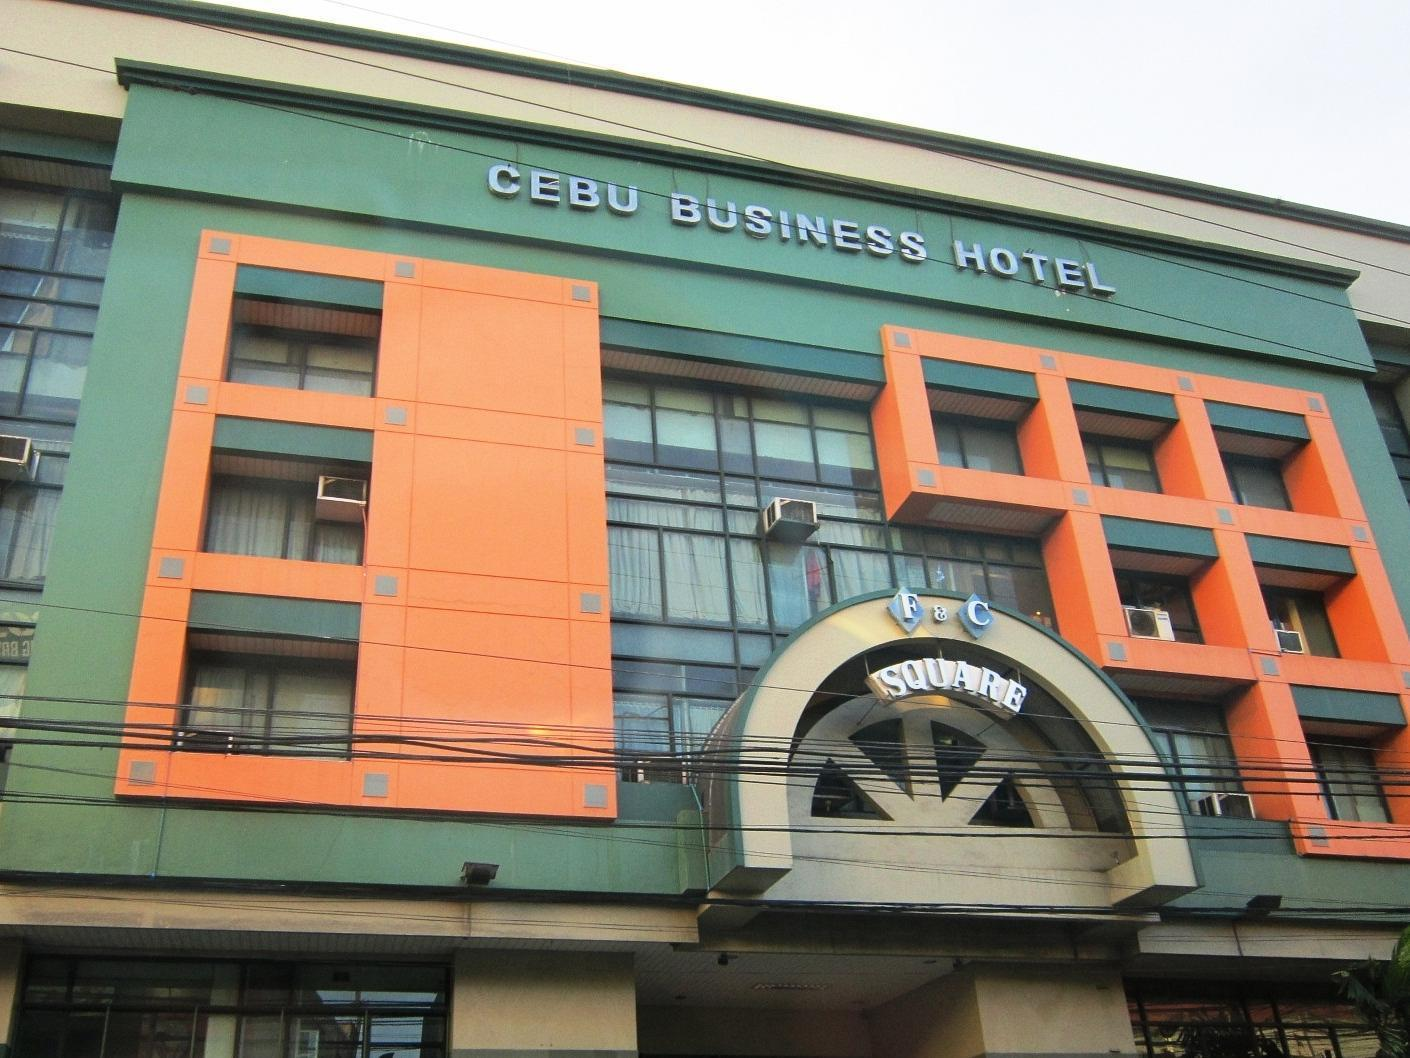 Cebu Business Hotel Xê-bu